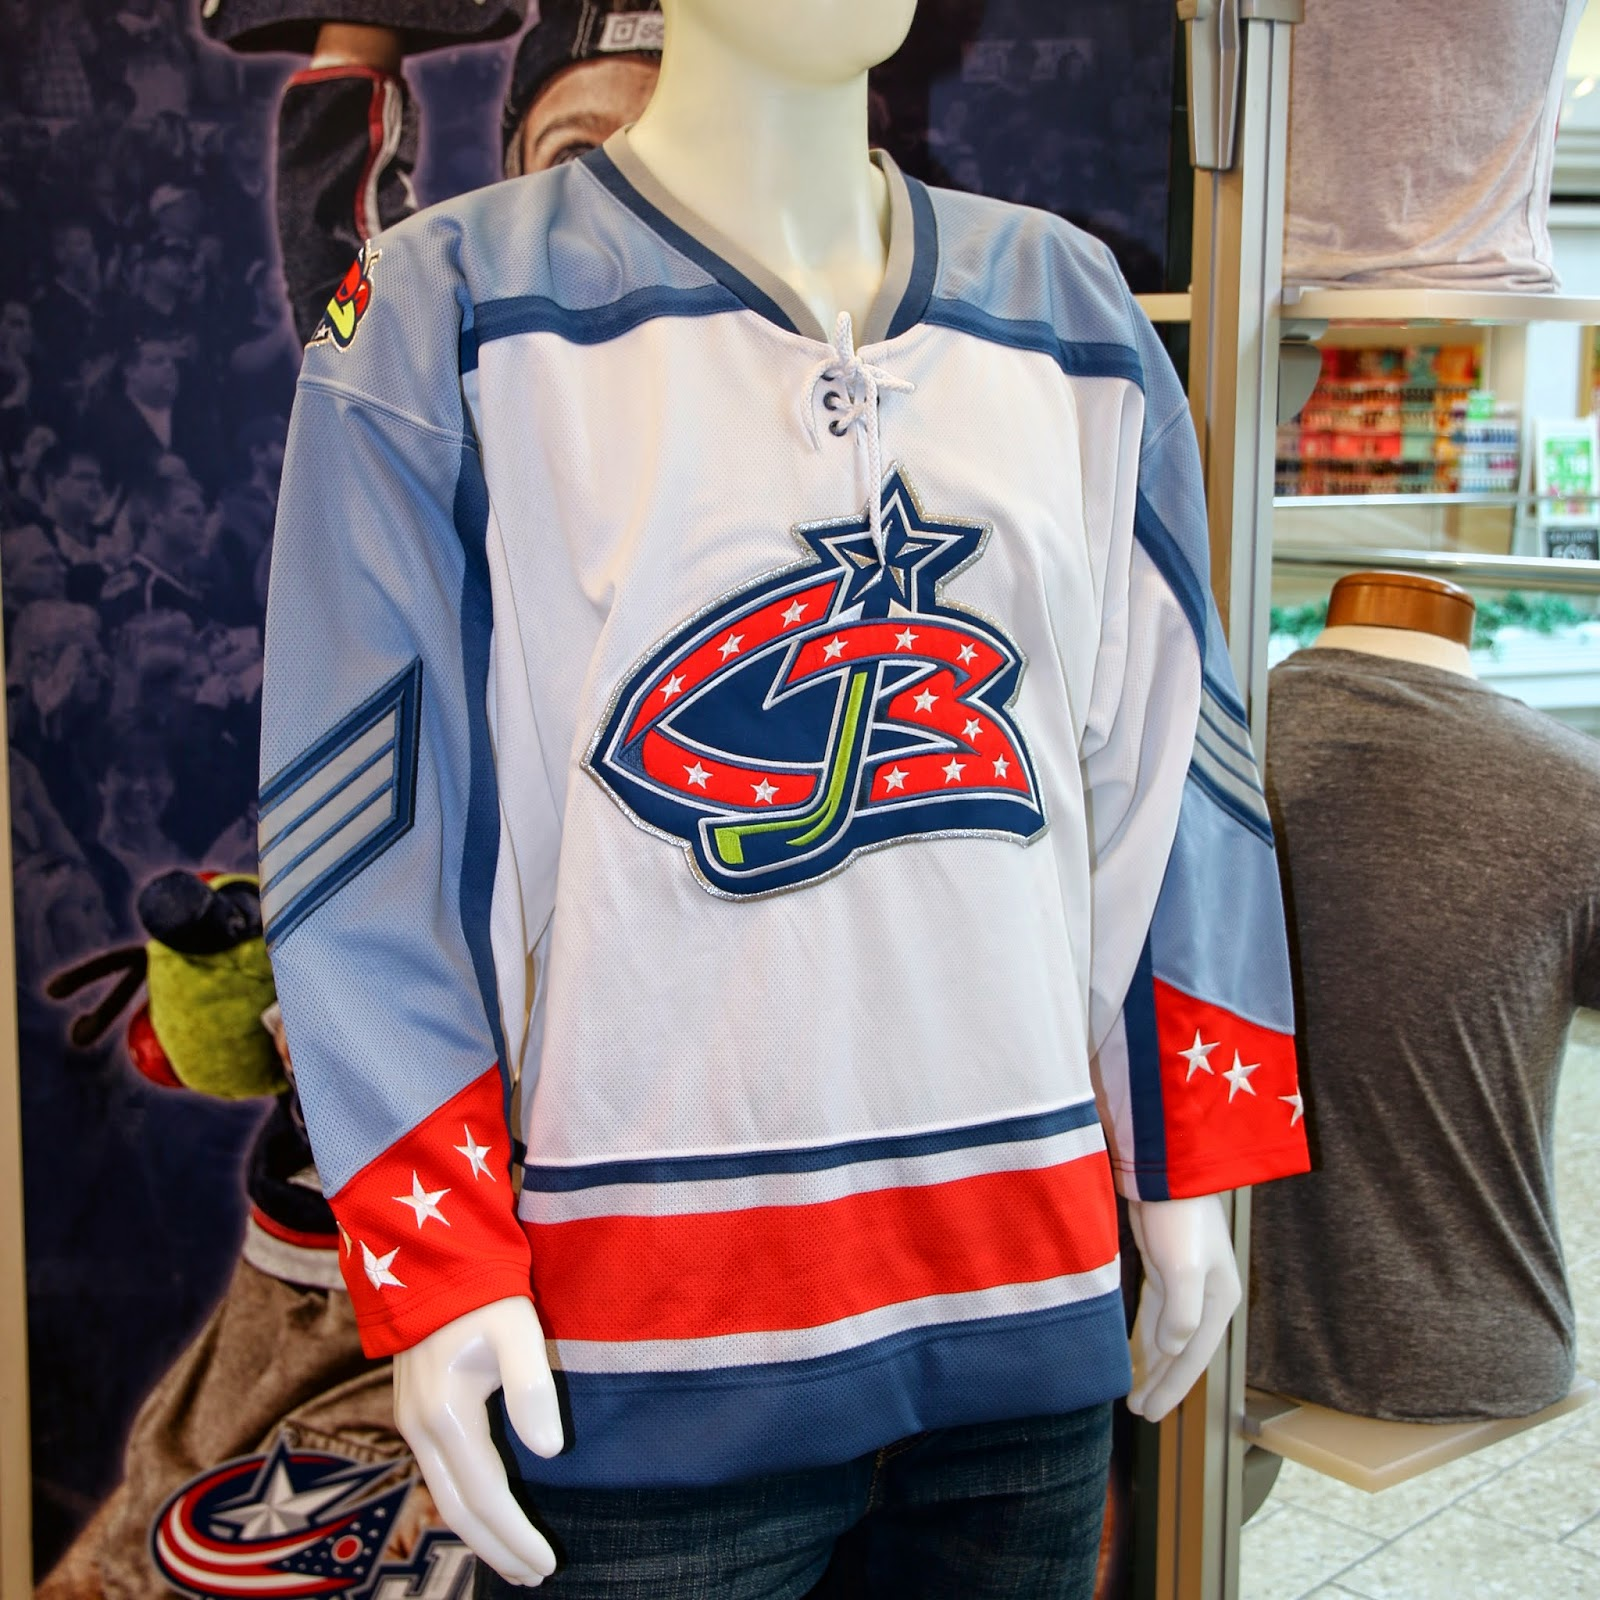 A lace-up collar would eventually become an element in the first Columbus  alternate jersey in 2003 as well as the current alternate introduced in  2010. 4a3810afe